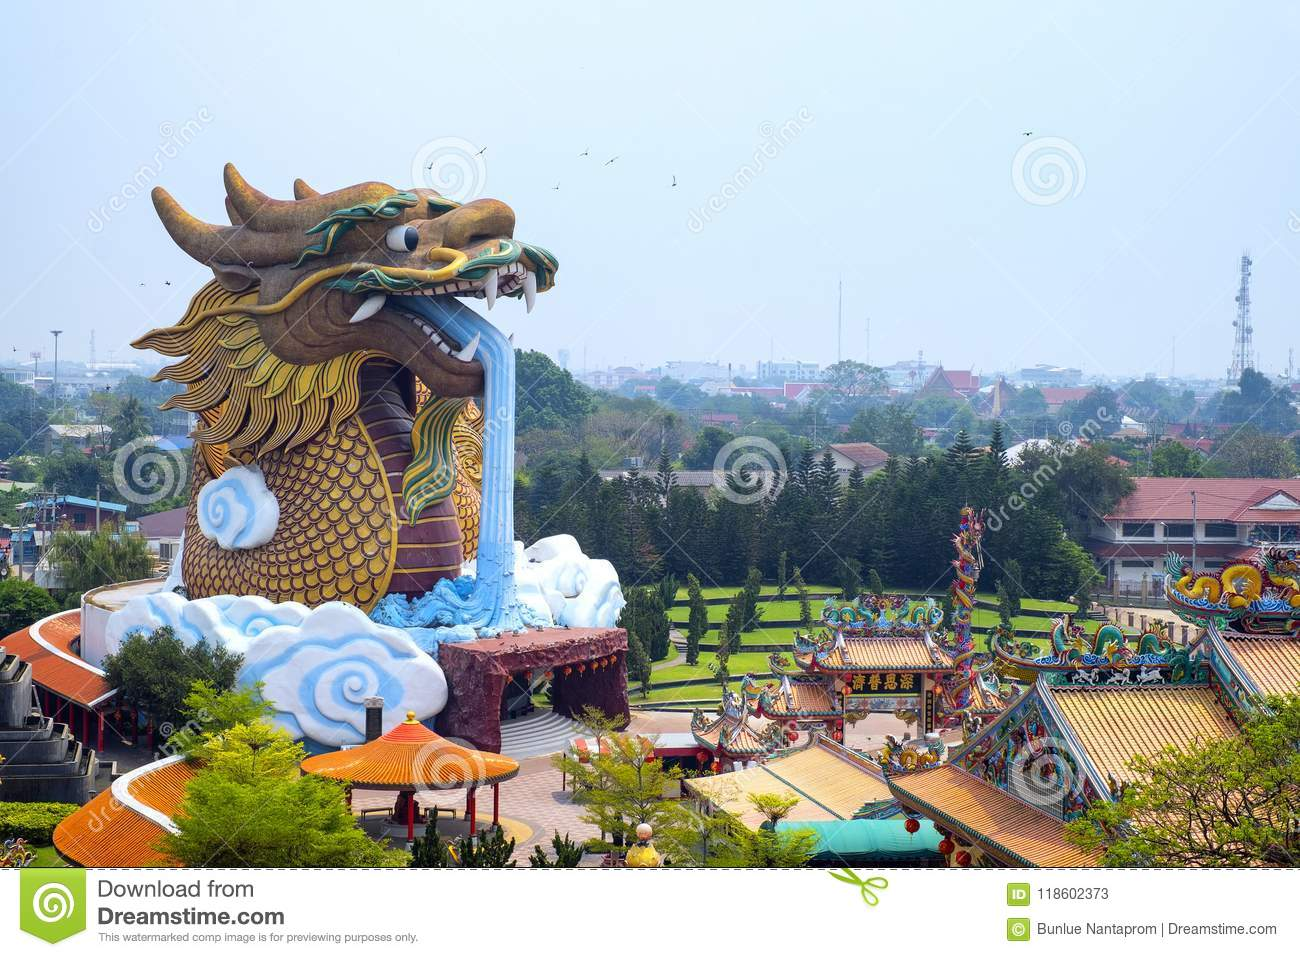 Giant Dragon Statue Suphanburi Thailand 13 March 2016 Big Dragon Statue At City P